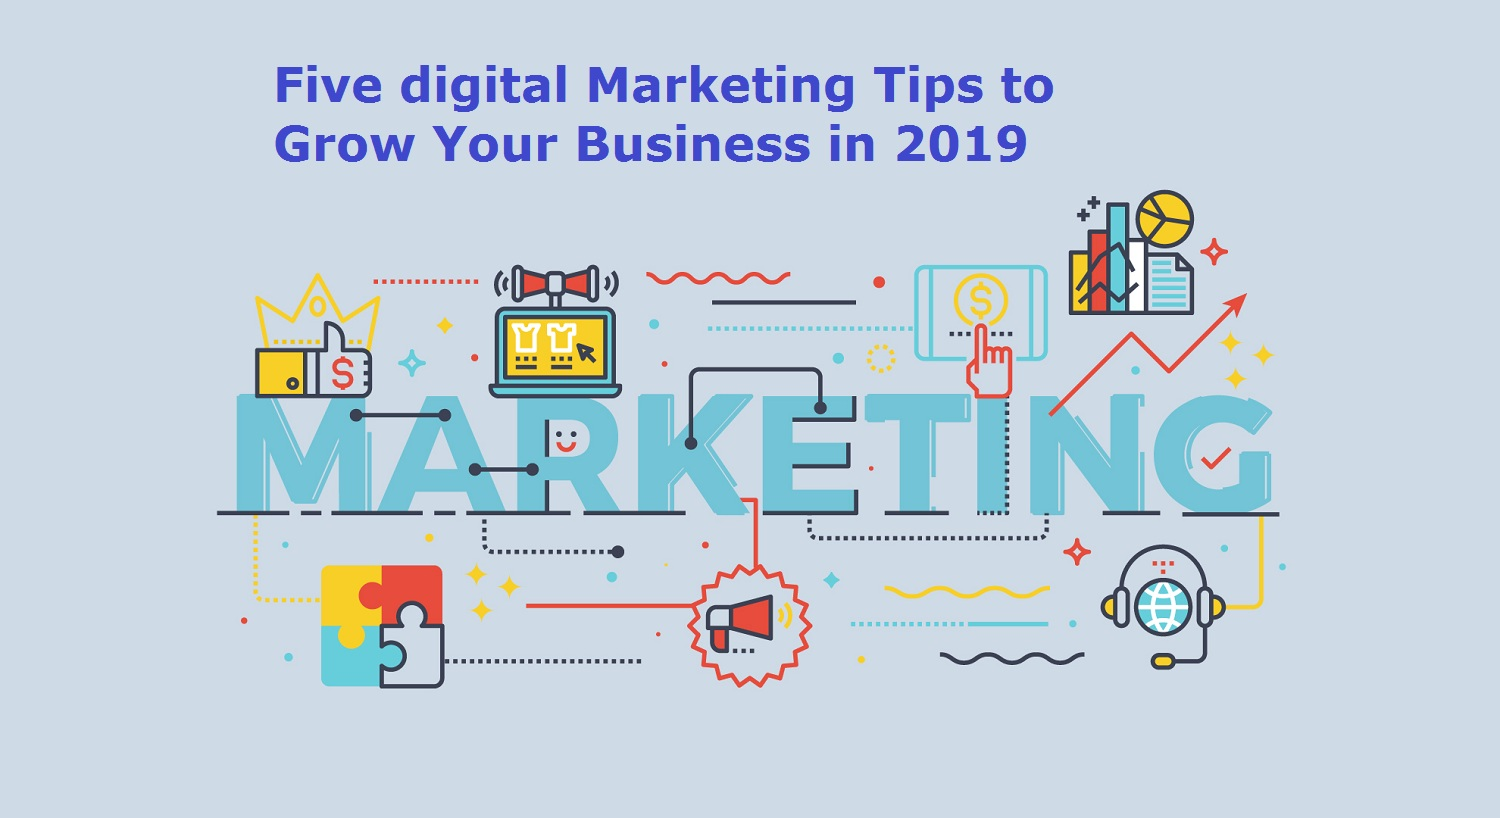 Five digital Marketing Tips to Grow Your Business in 2019